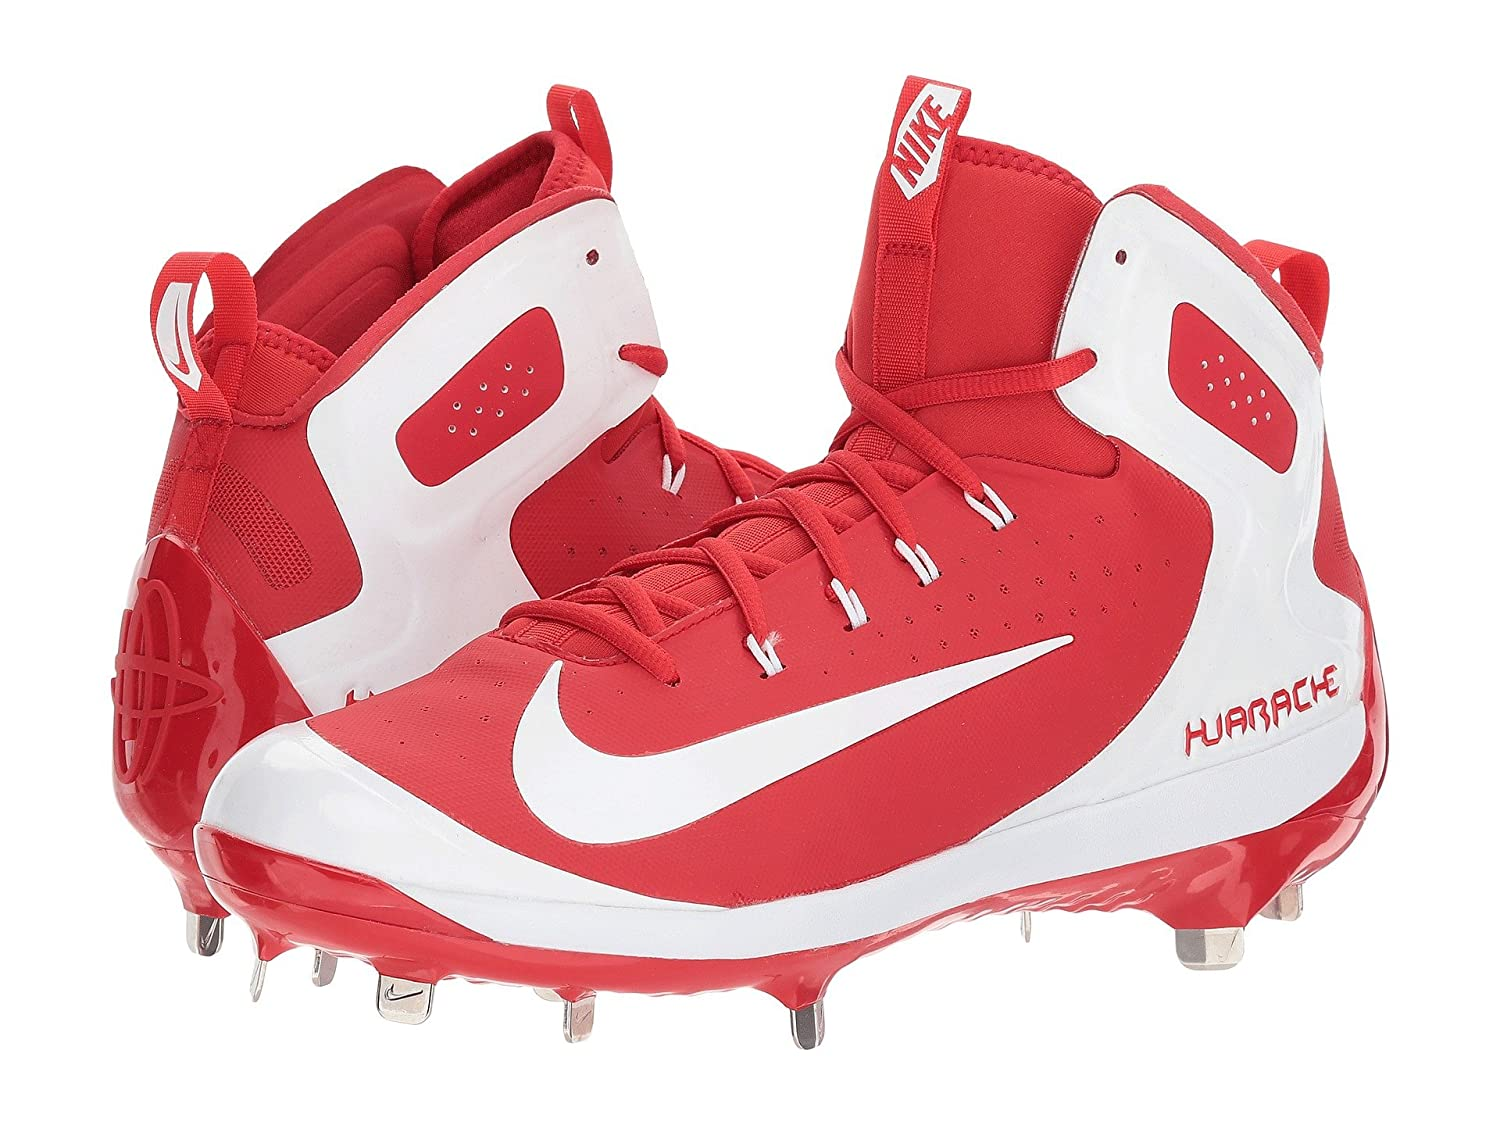 (ナイキ) NIKE メンズ野球ベースボールシューズ靴 Alpha Huarache Elite University Red/White/White 9 (27cm) D Medium B078Q27BF9